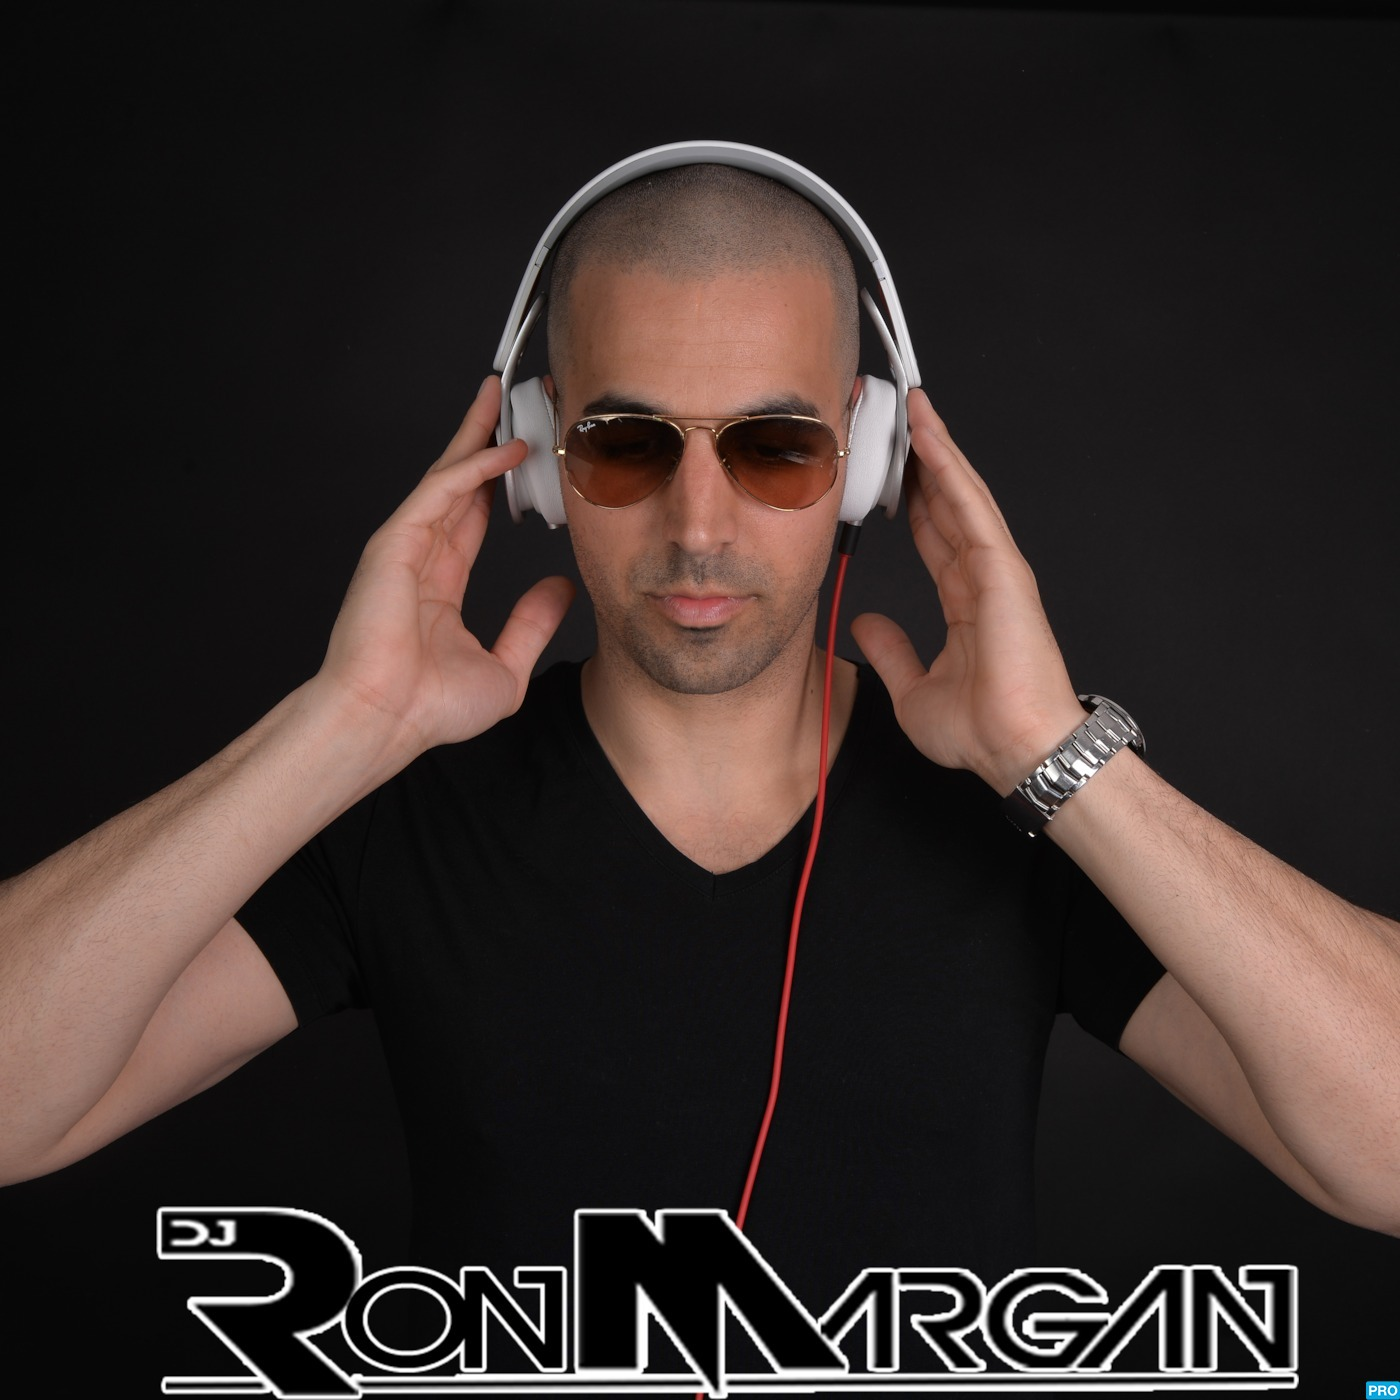 DJ Ron Margan EDM Podcast